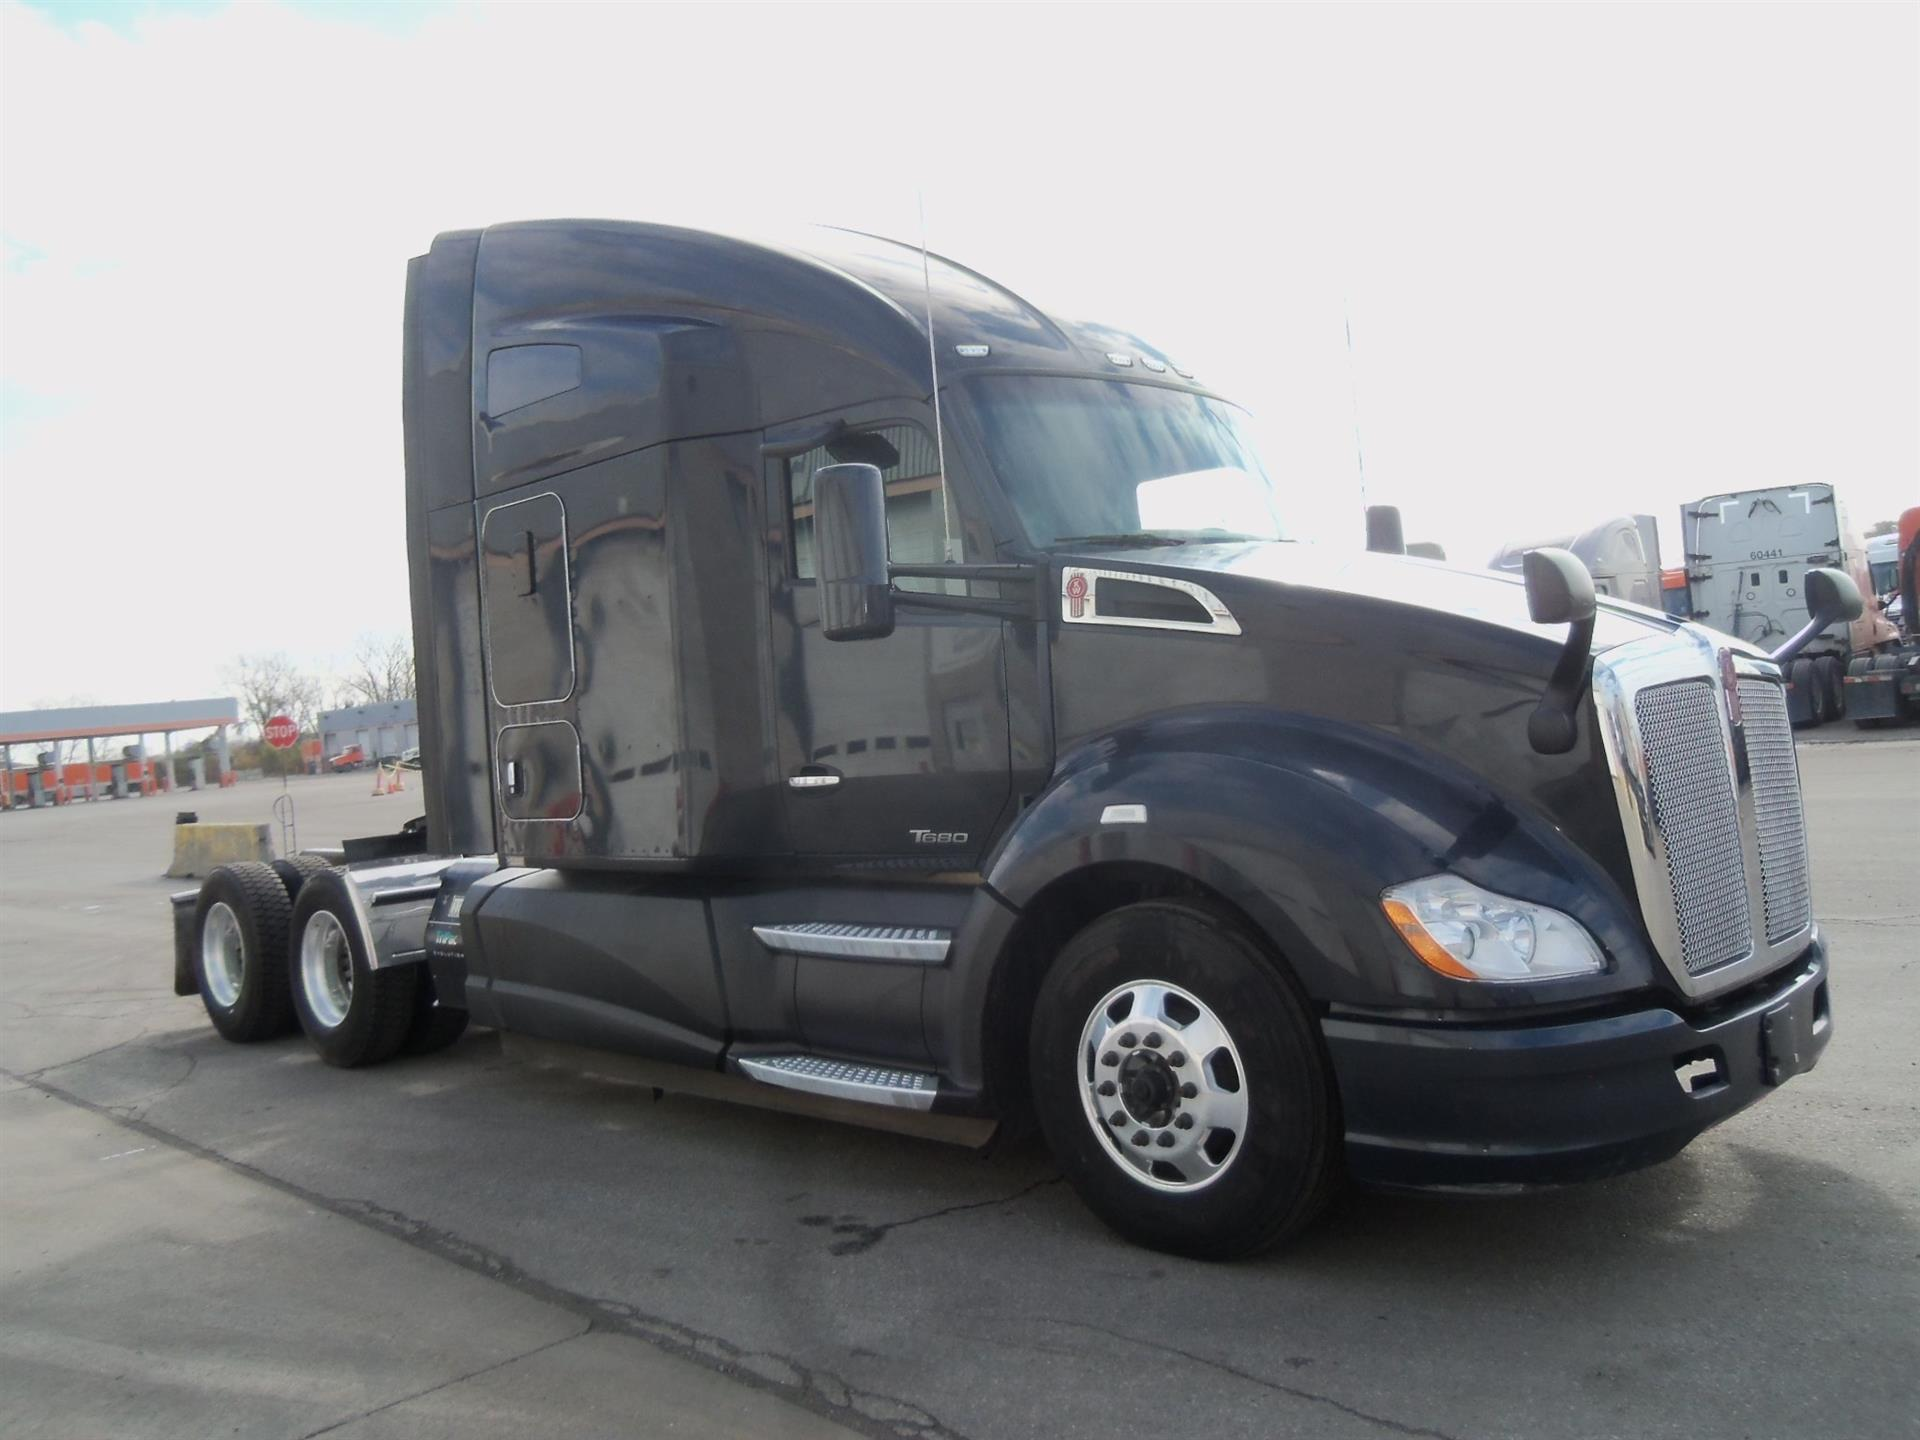 USED 2016 KENWORTH UNKNOWN SLEEPER TRUCK #135053